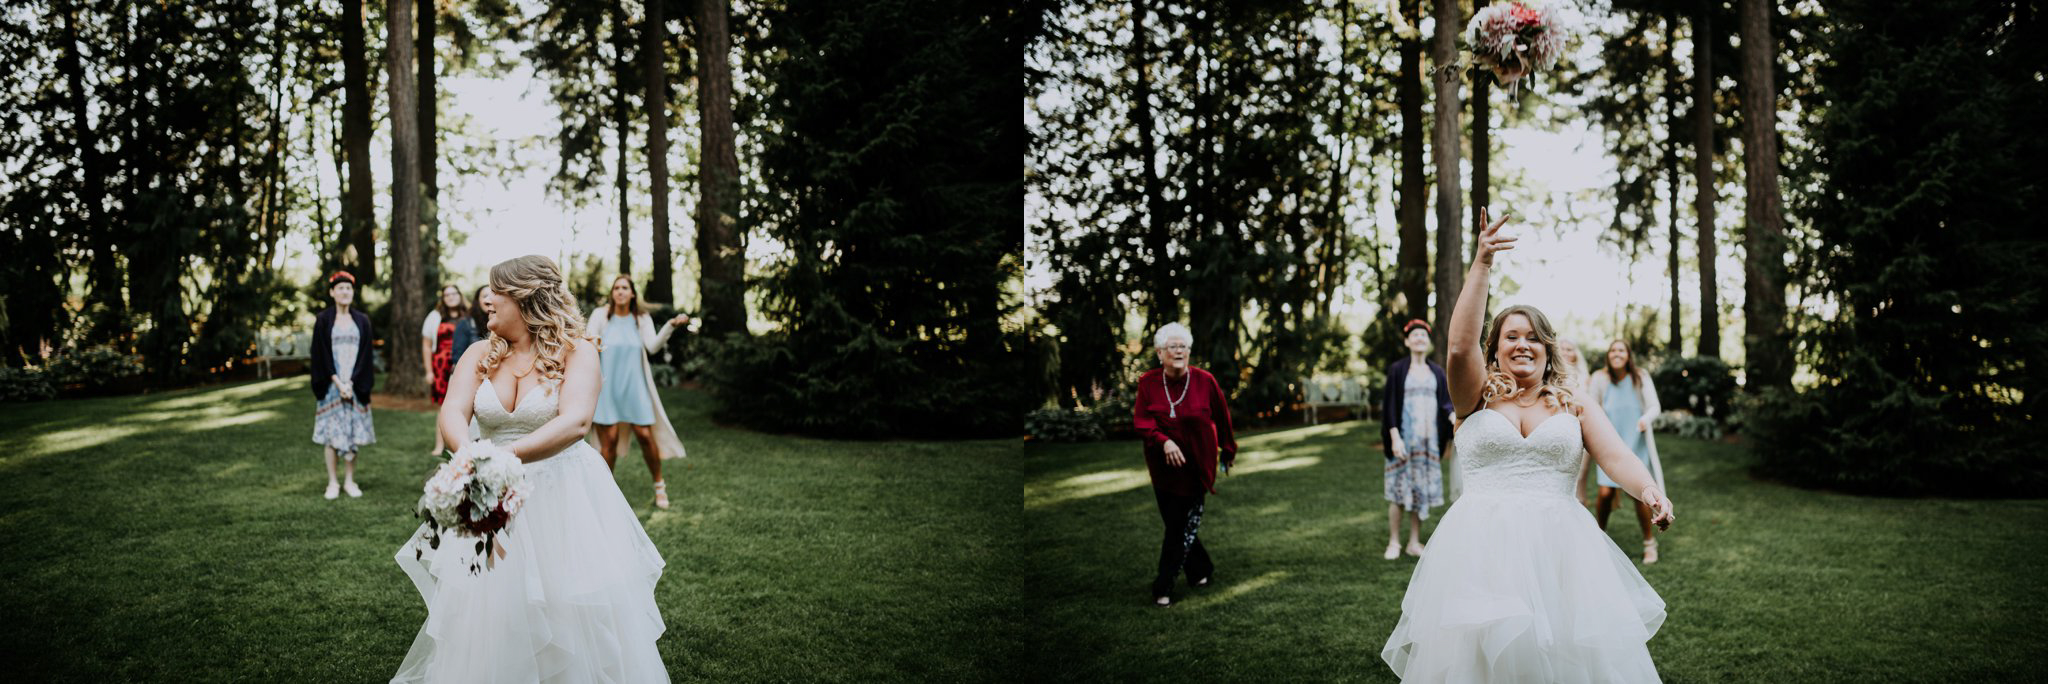 evergreen-gardens-bellingham-wedding-seattle-photographer-caitlyn-nikula-103.jpg